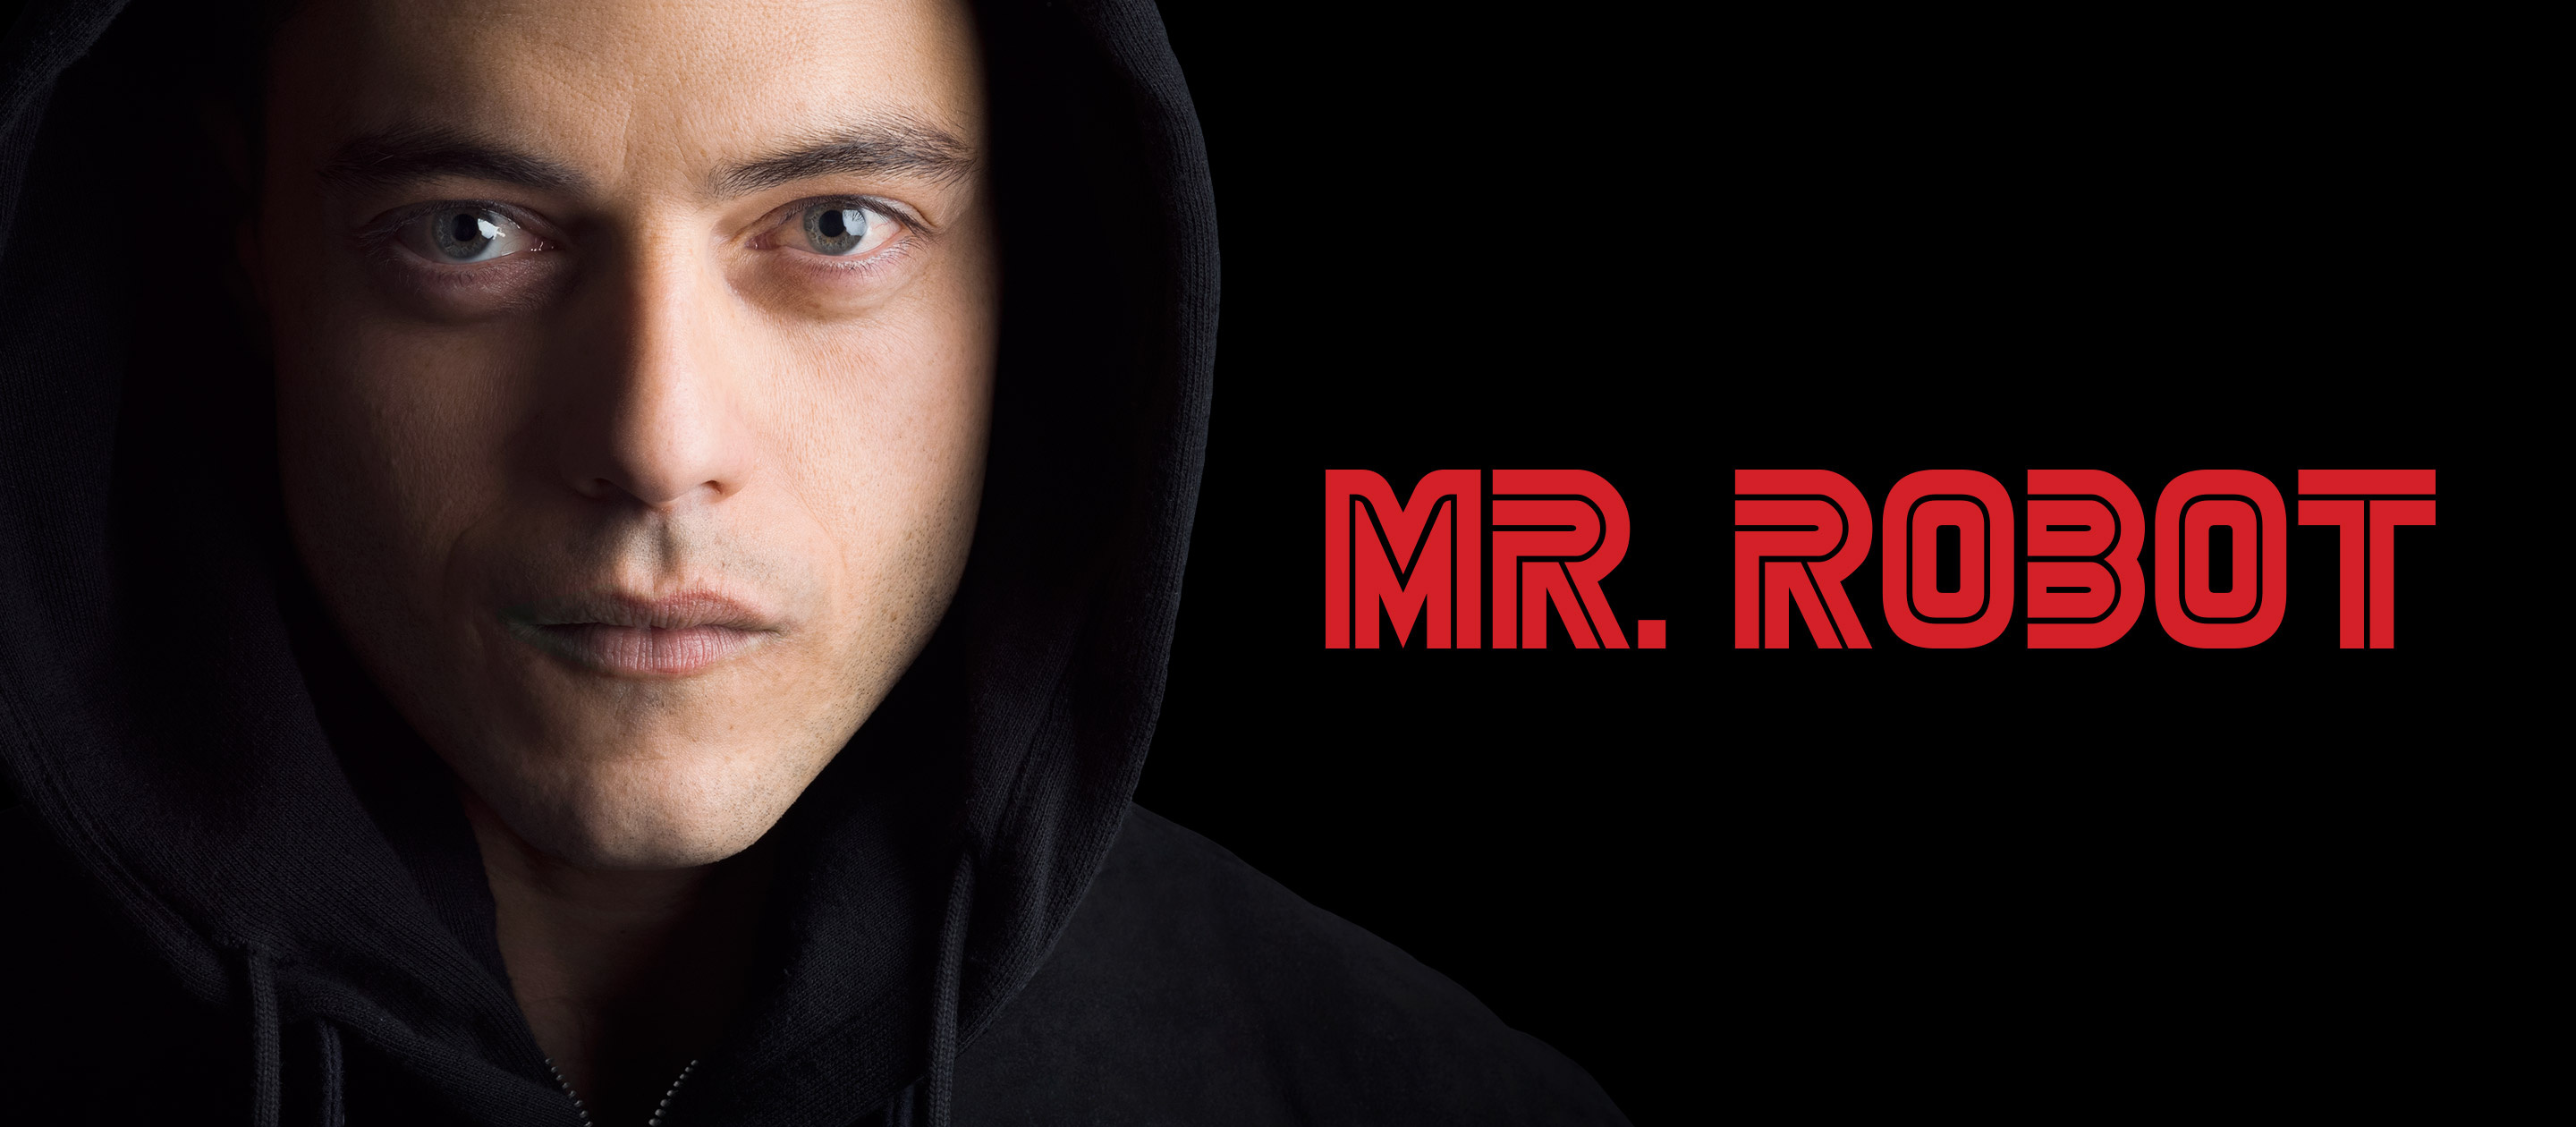 Within App Offers Live Simulcast of 'Mr. Robot VR Experience'